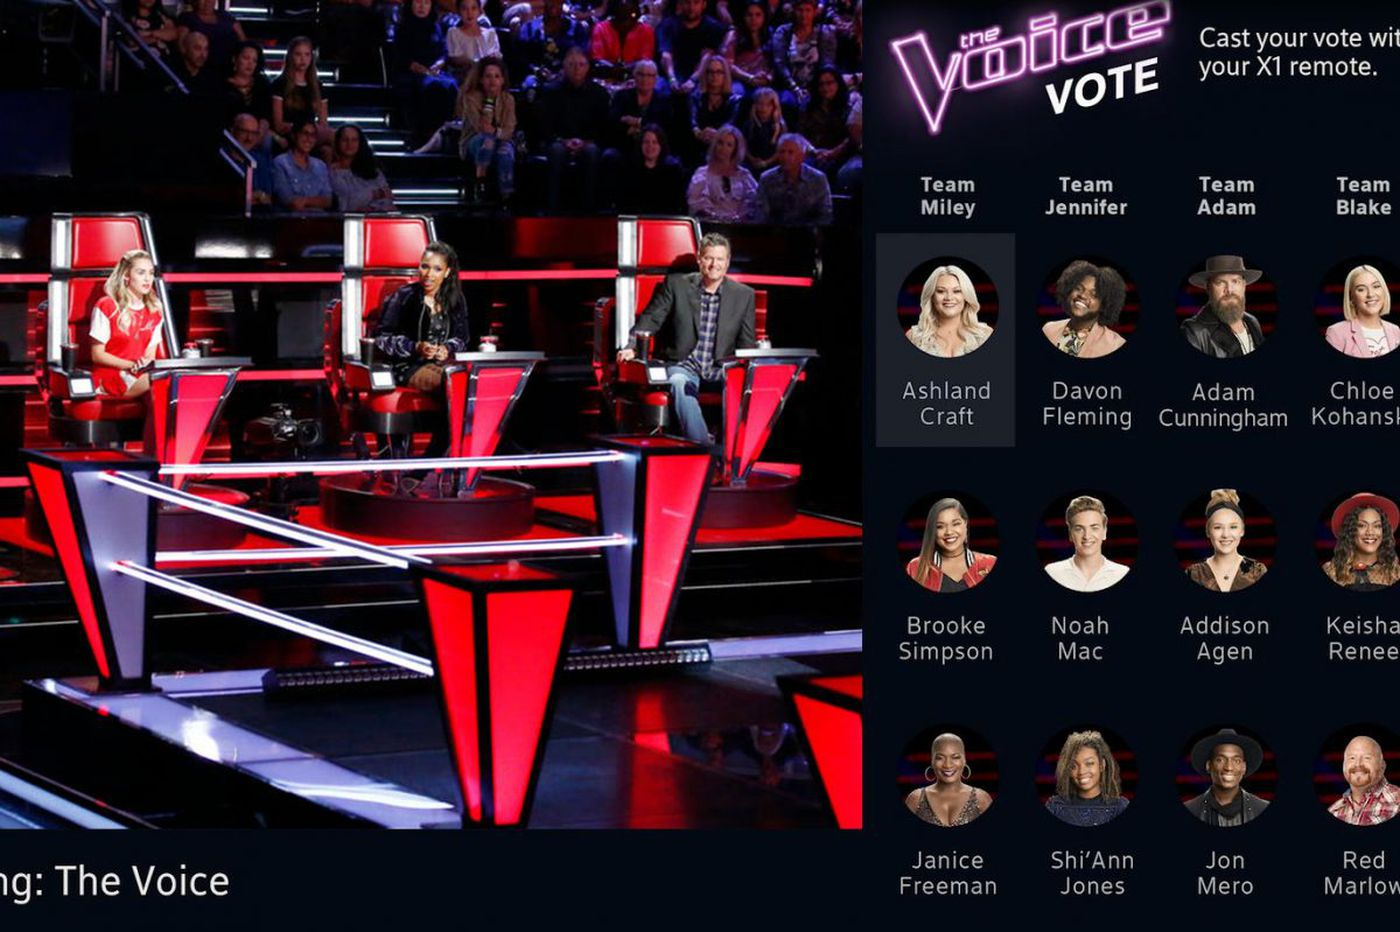 Comcast X1 users can now vote on 'The Voice' with their remotes